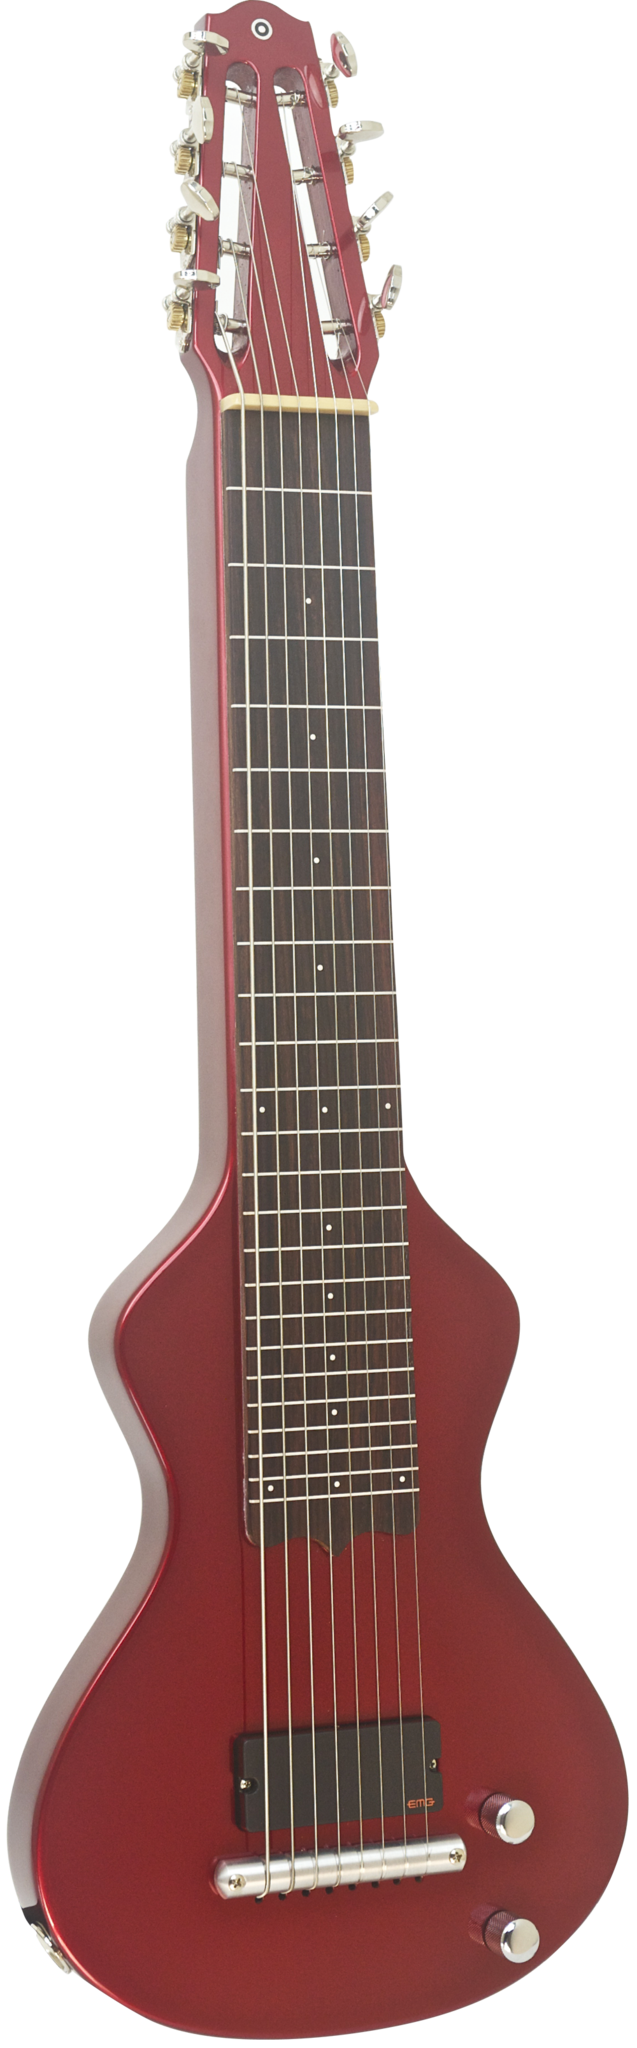 SOLD Asher 8-String Lap Steel, Candy Apple Red Poly, #872